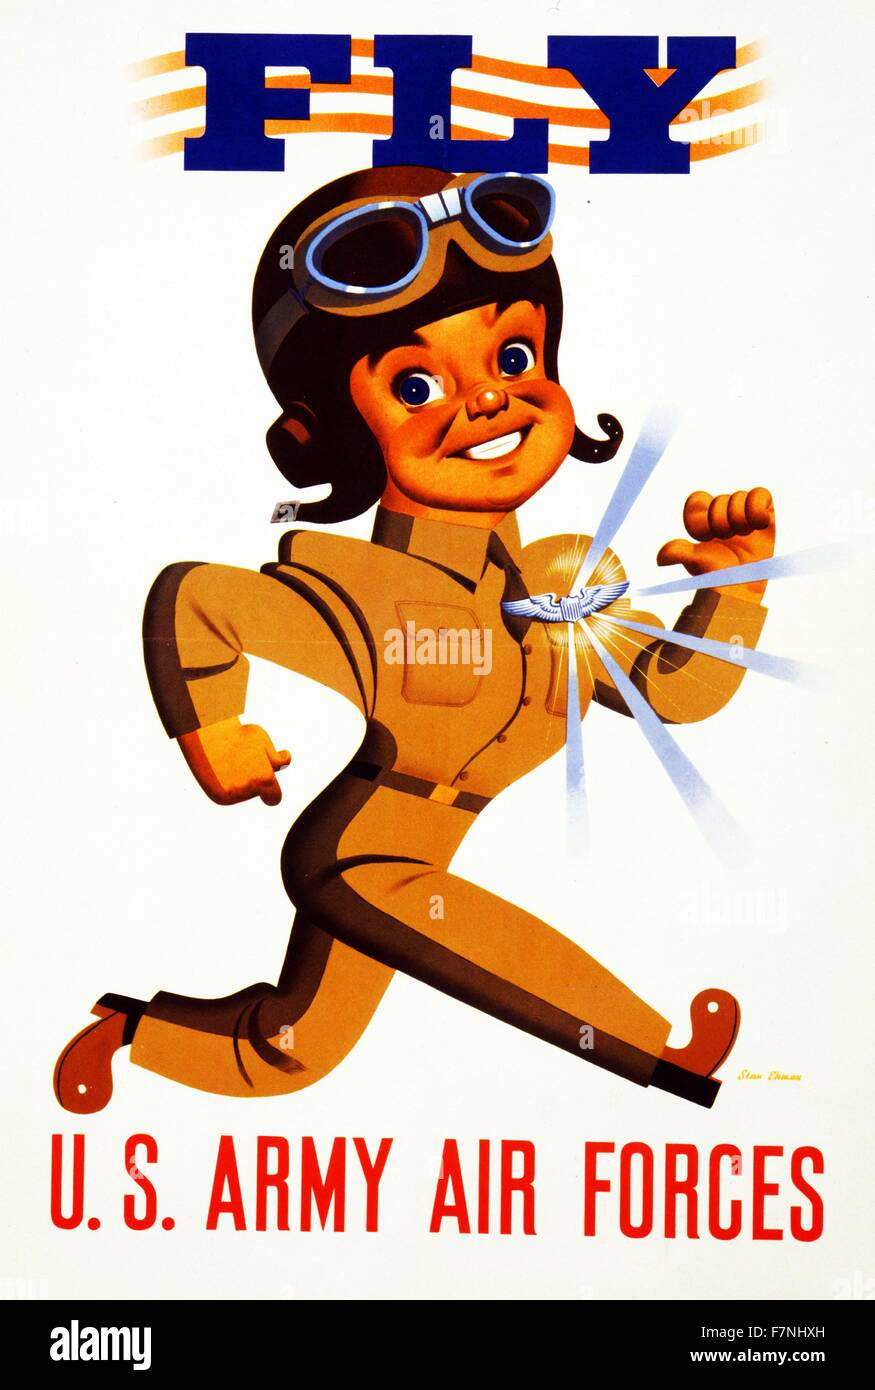 Fly - U.S. Army Air Forces 1942 Poster showing a pilot wearing shining wings on his chest. - Stock Image